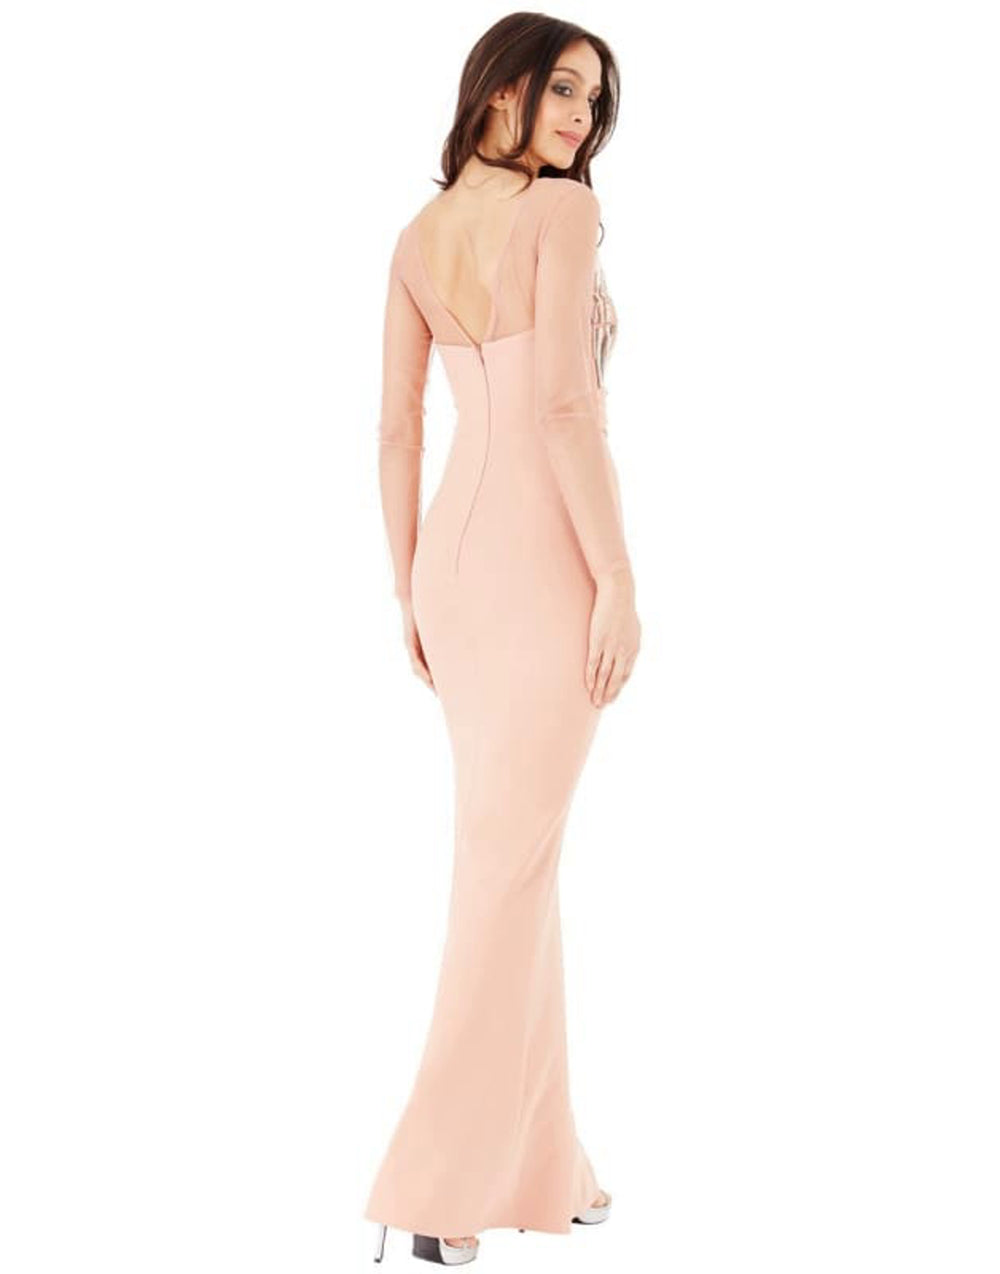 Long Sleeved Embellished Maxi Dress - Dresses Blush Colour dress, bodycon dress, bodycon dress with fish tail, bodycon dresses, bodycon maxi